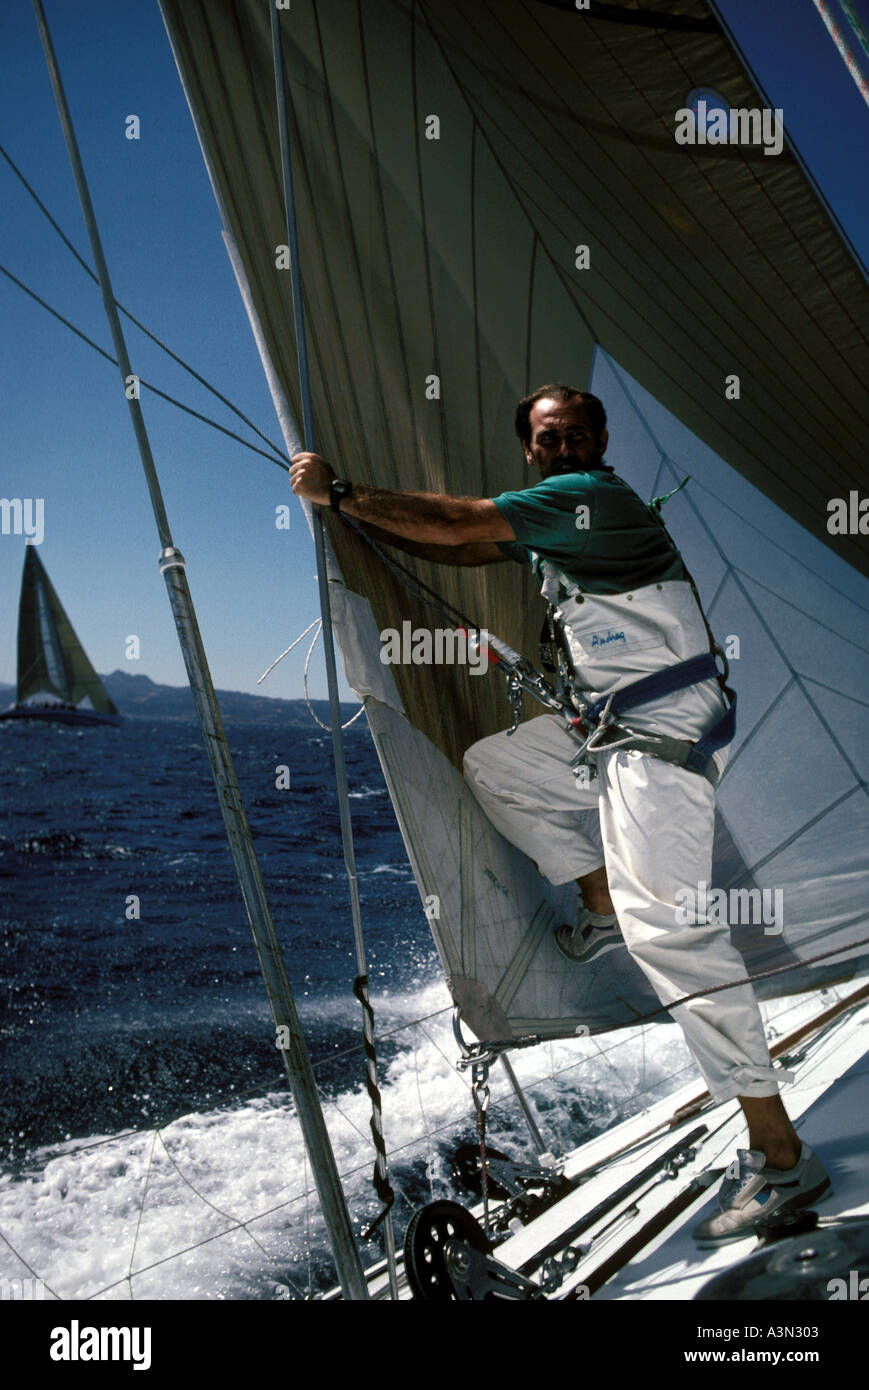 Bowman prepares to go up the mast - Stock Image